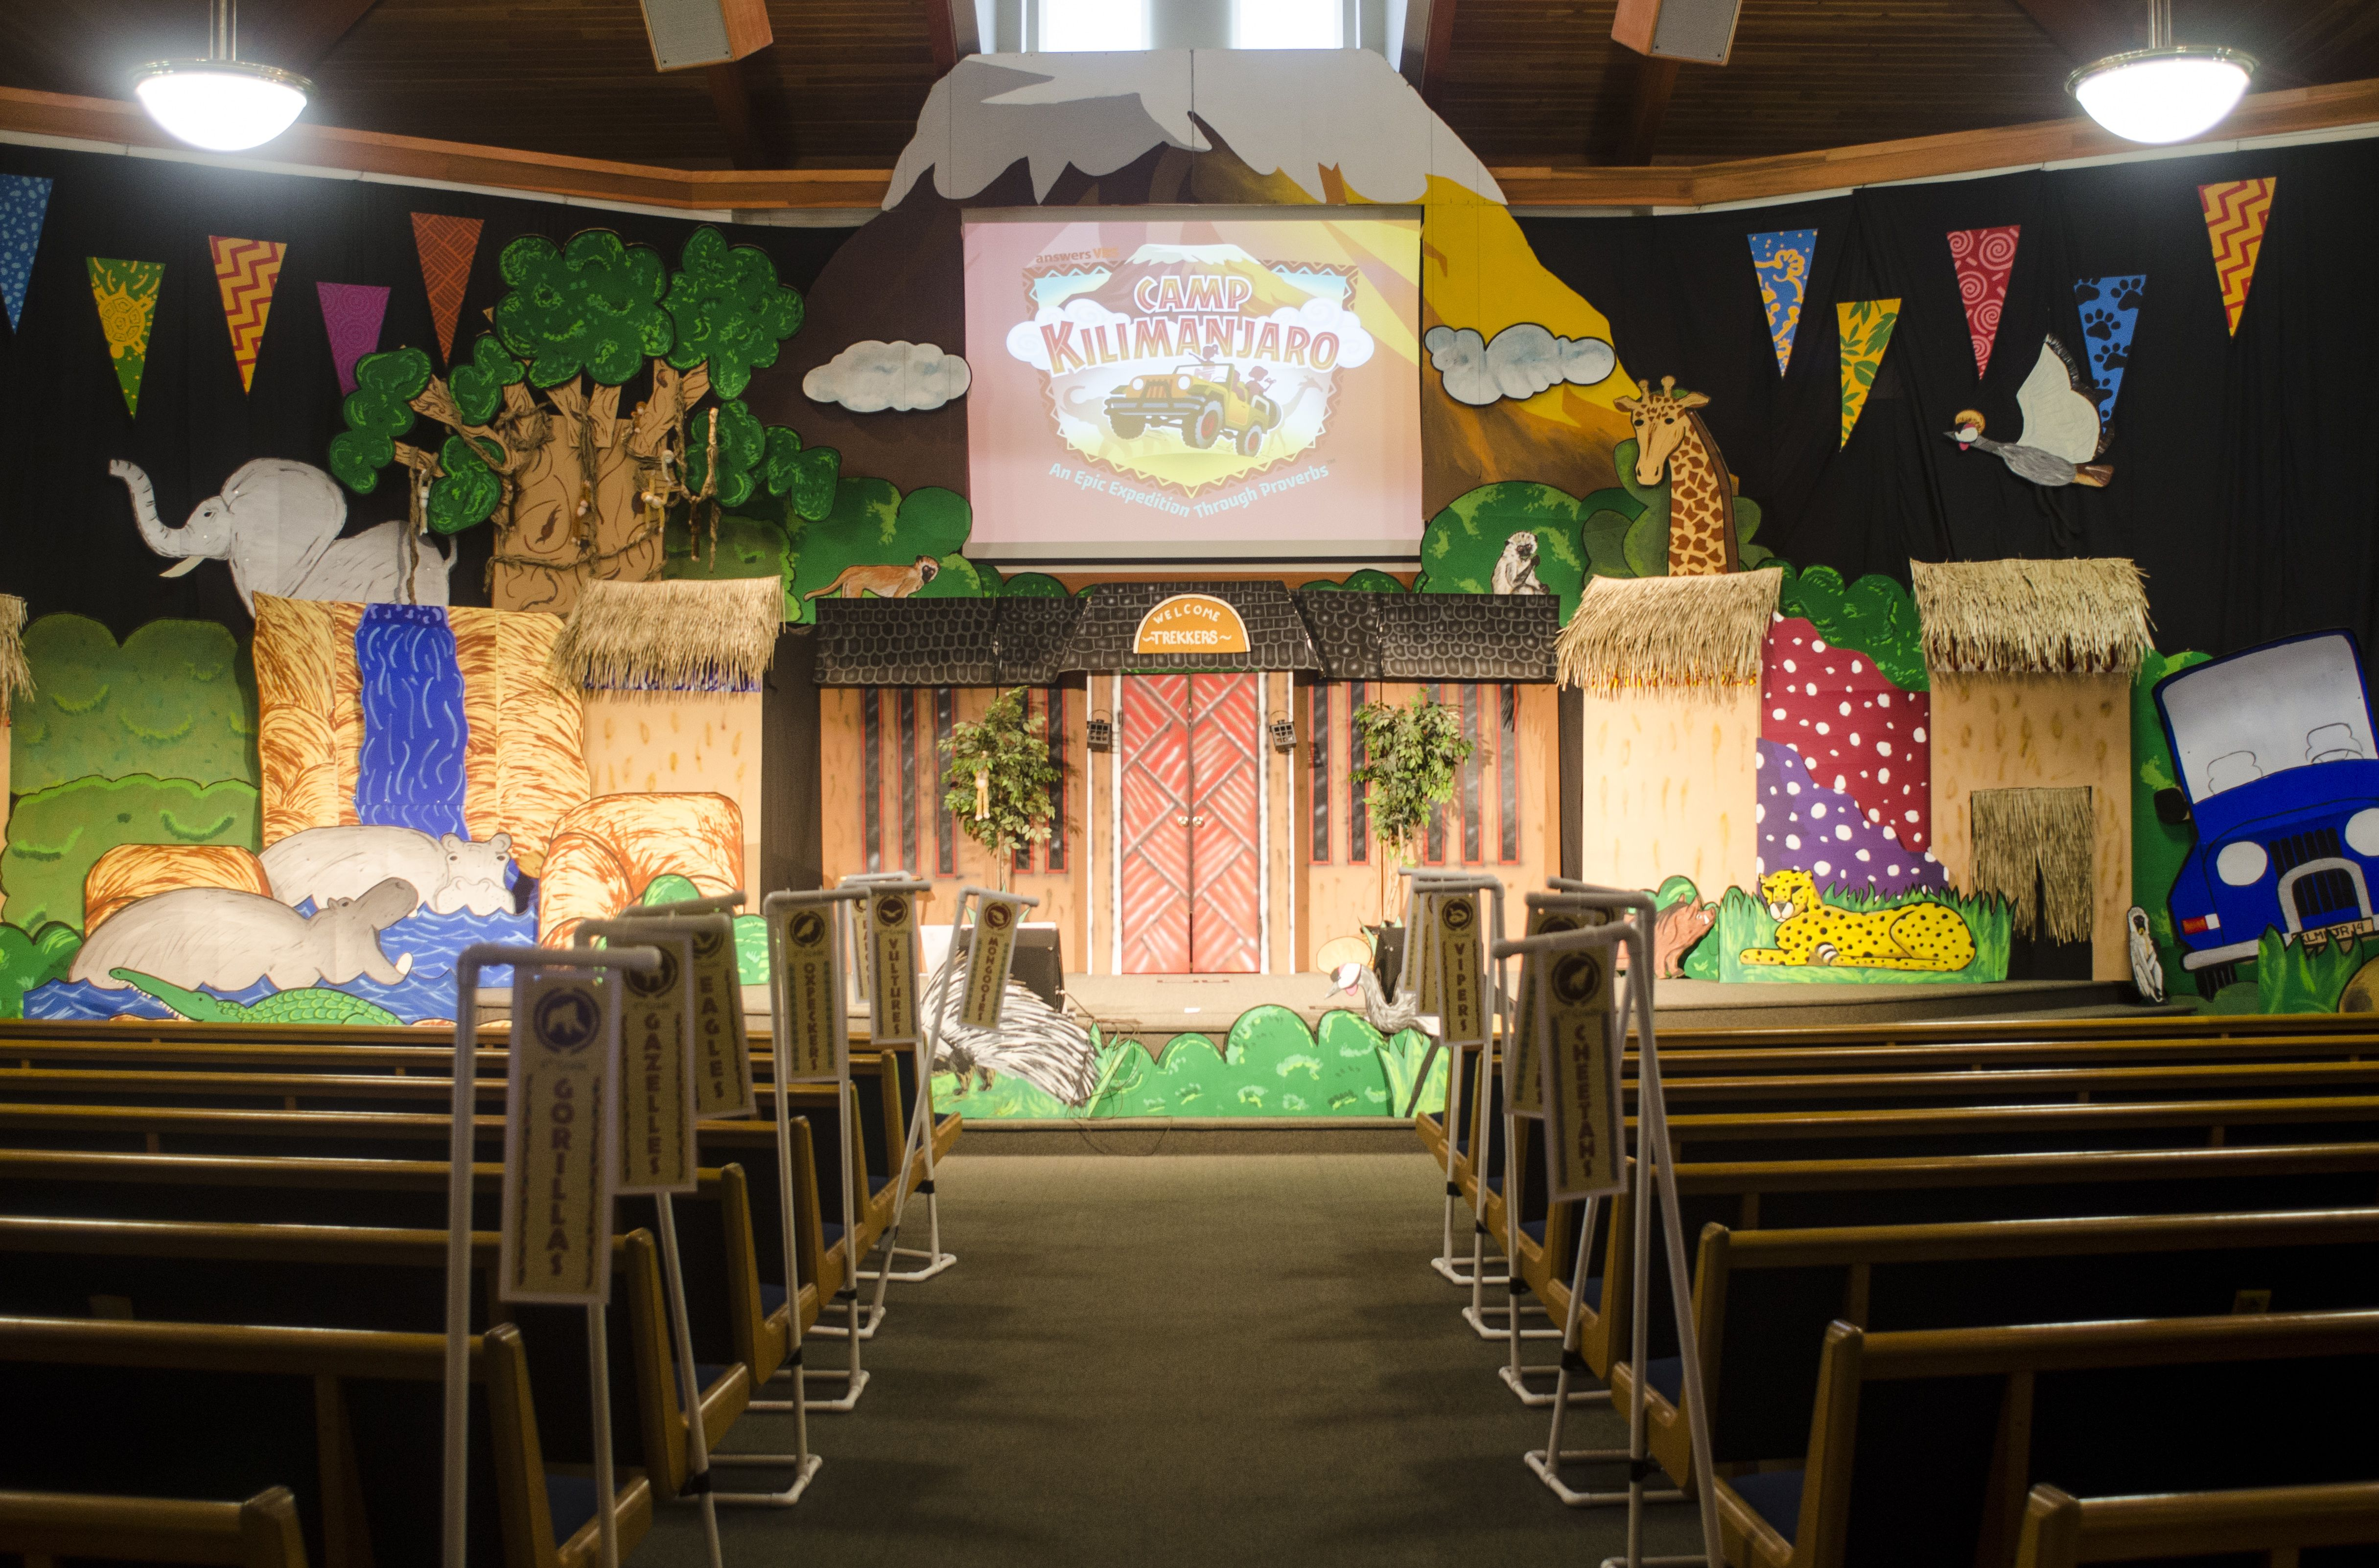 Assembly Set For Campkilimanjaro At A Mid Size Church